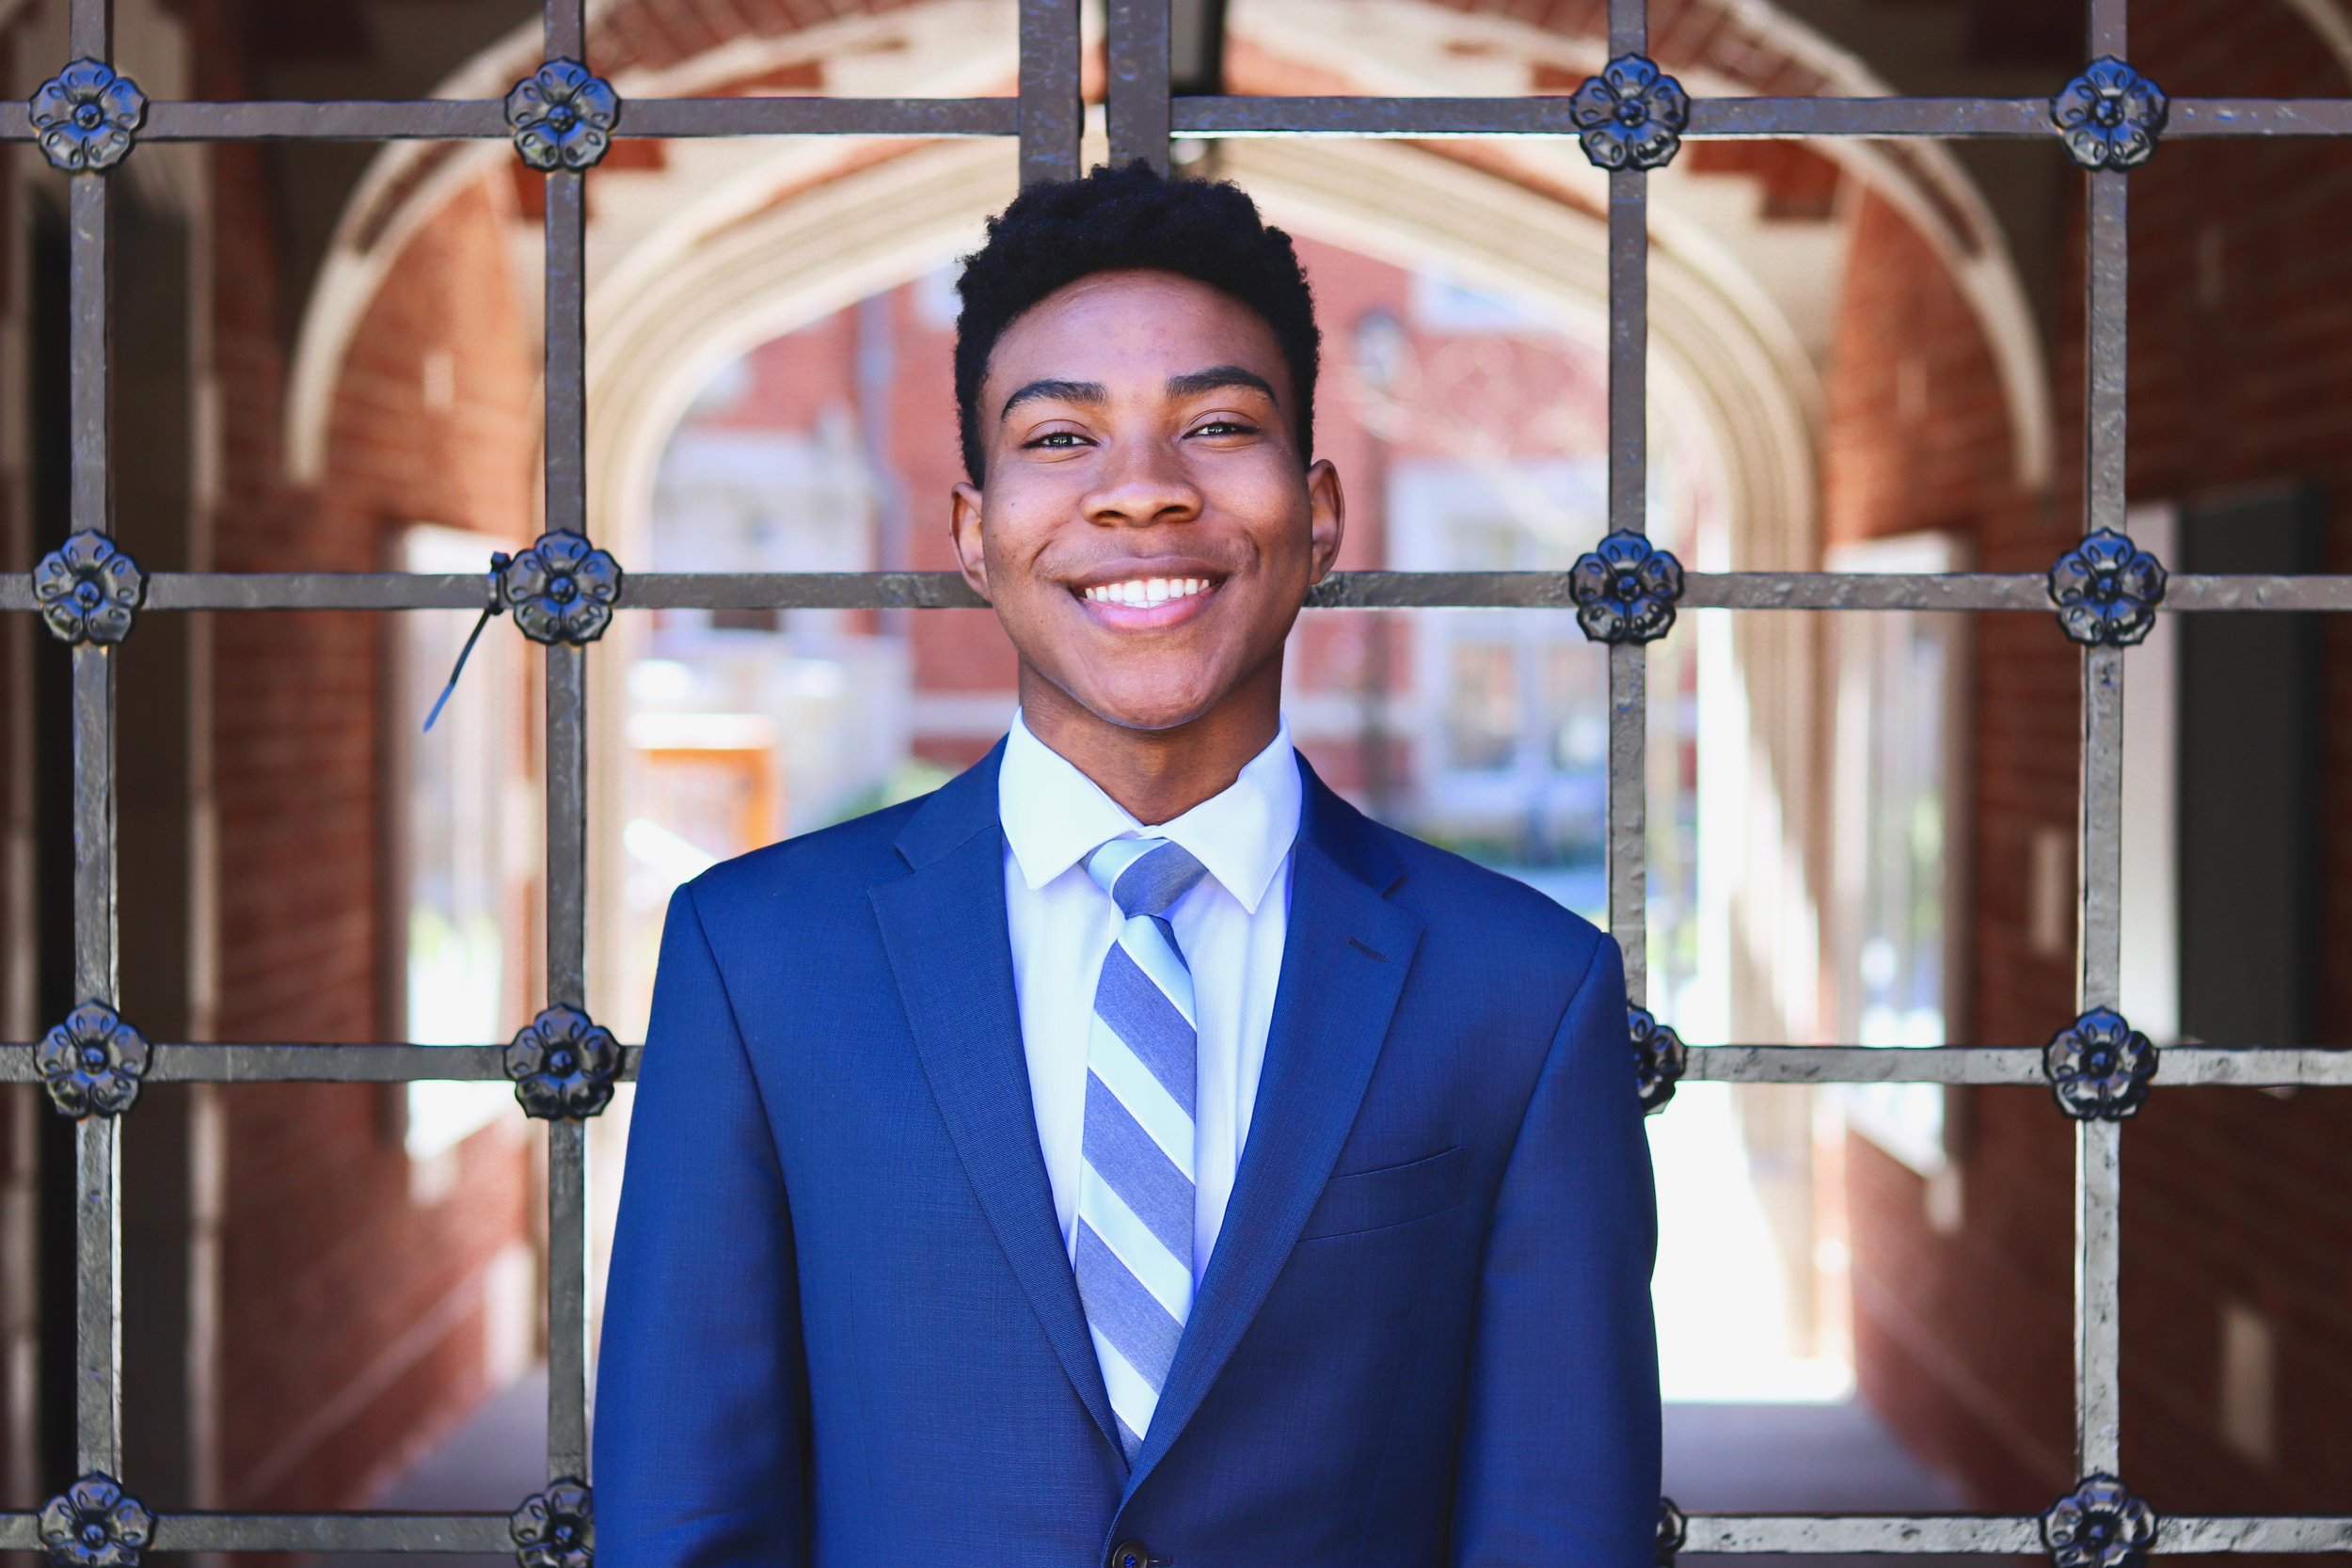 Kahlil Greene (TD' '21) | Yale College Council President 2019-2020